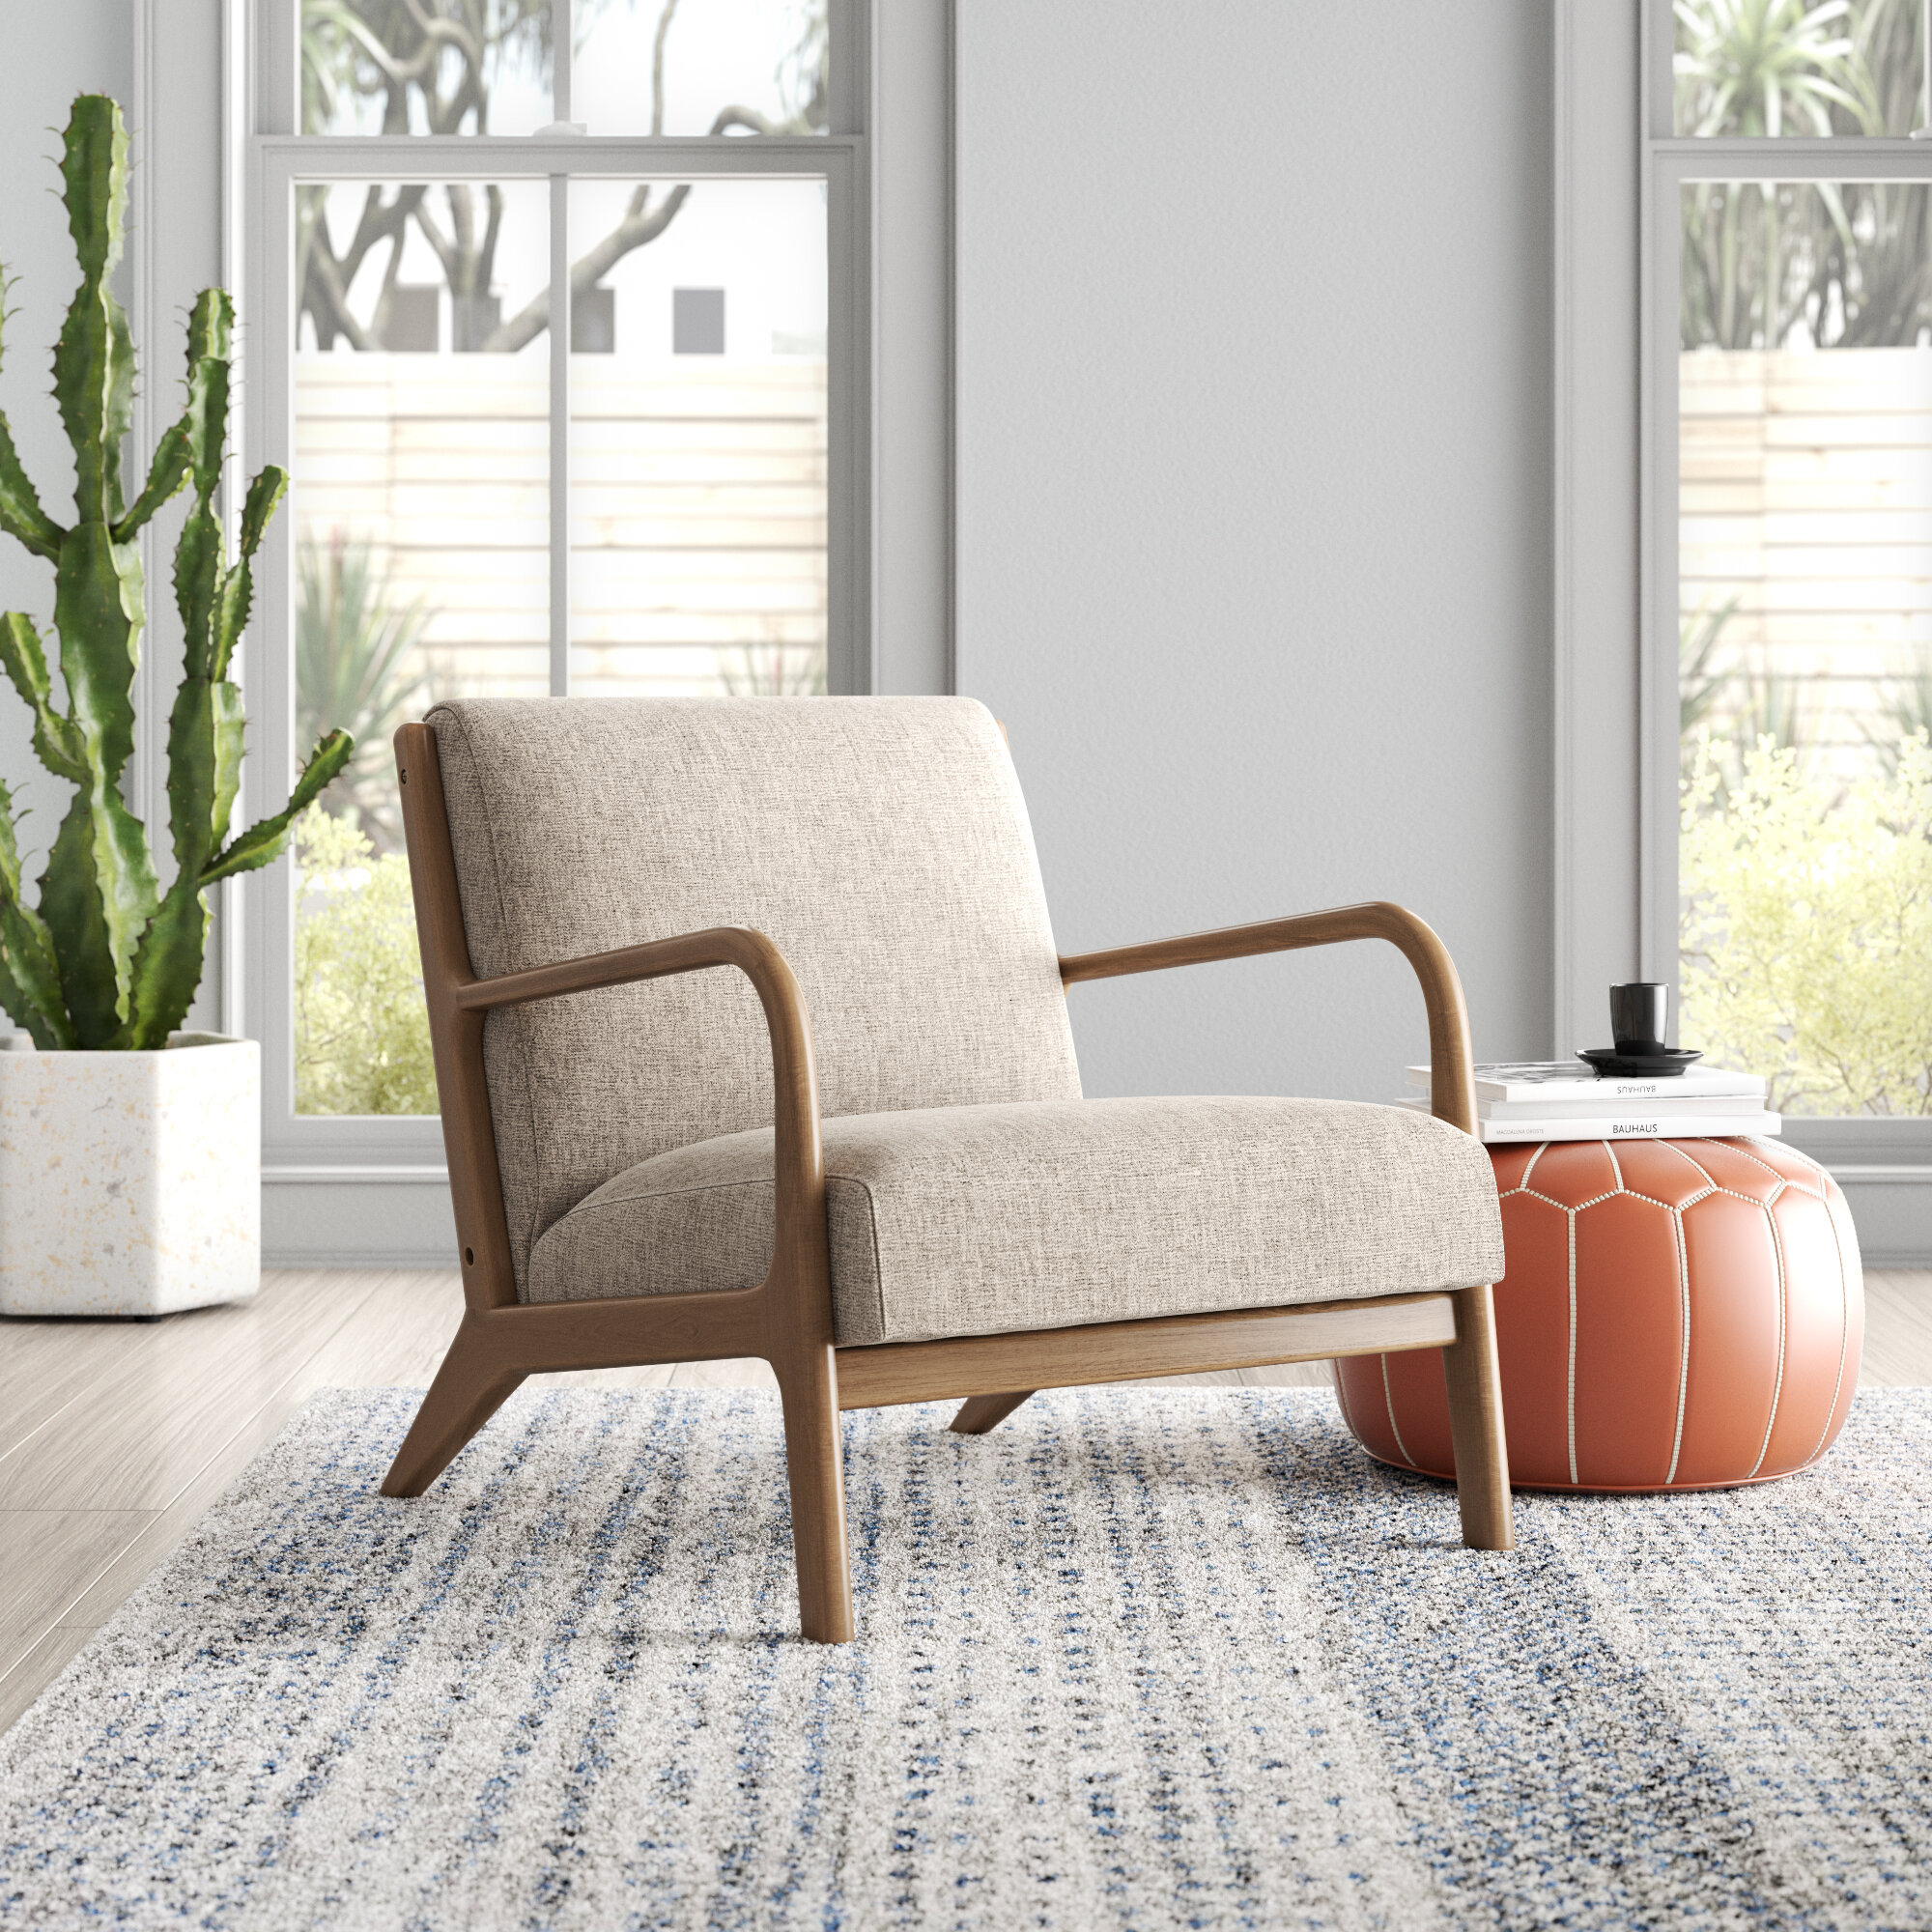 Arm Modern & Contemporary Accent Chairs You'Ll Love In 2021 With Regard To Ragsdale Armchairs (View 6 of 15)